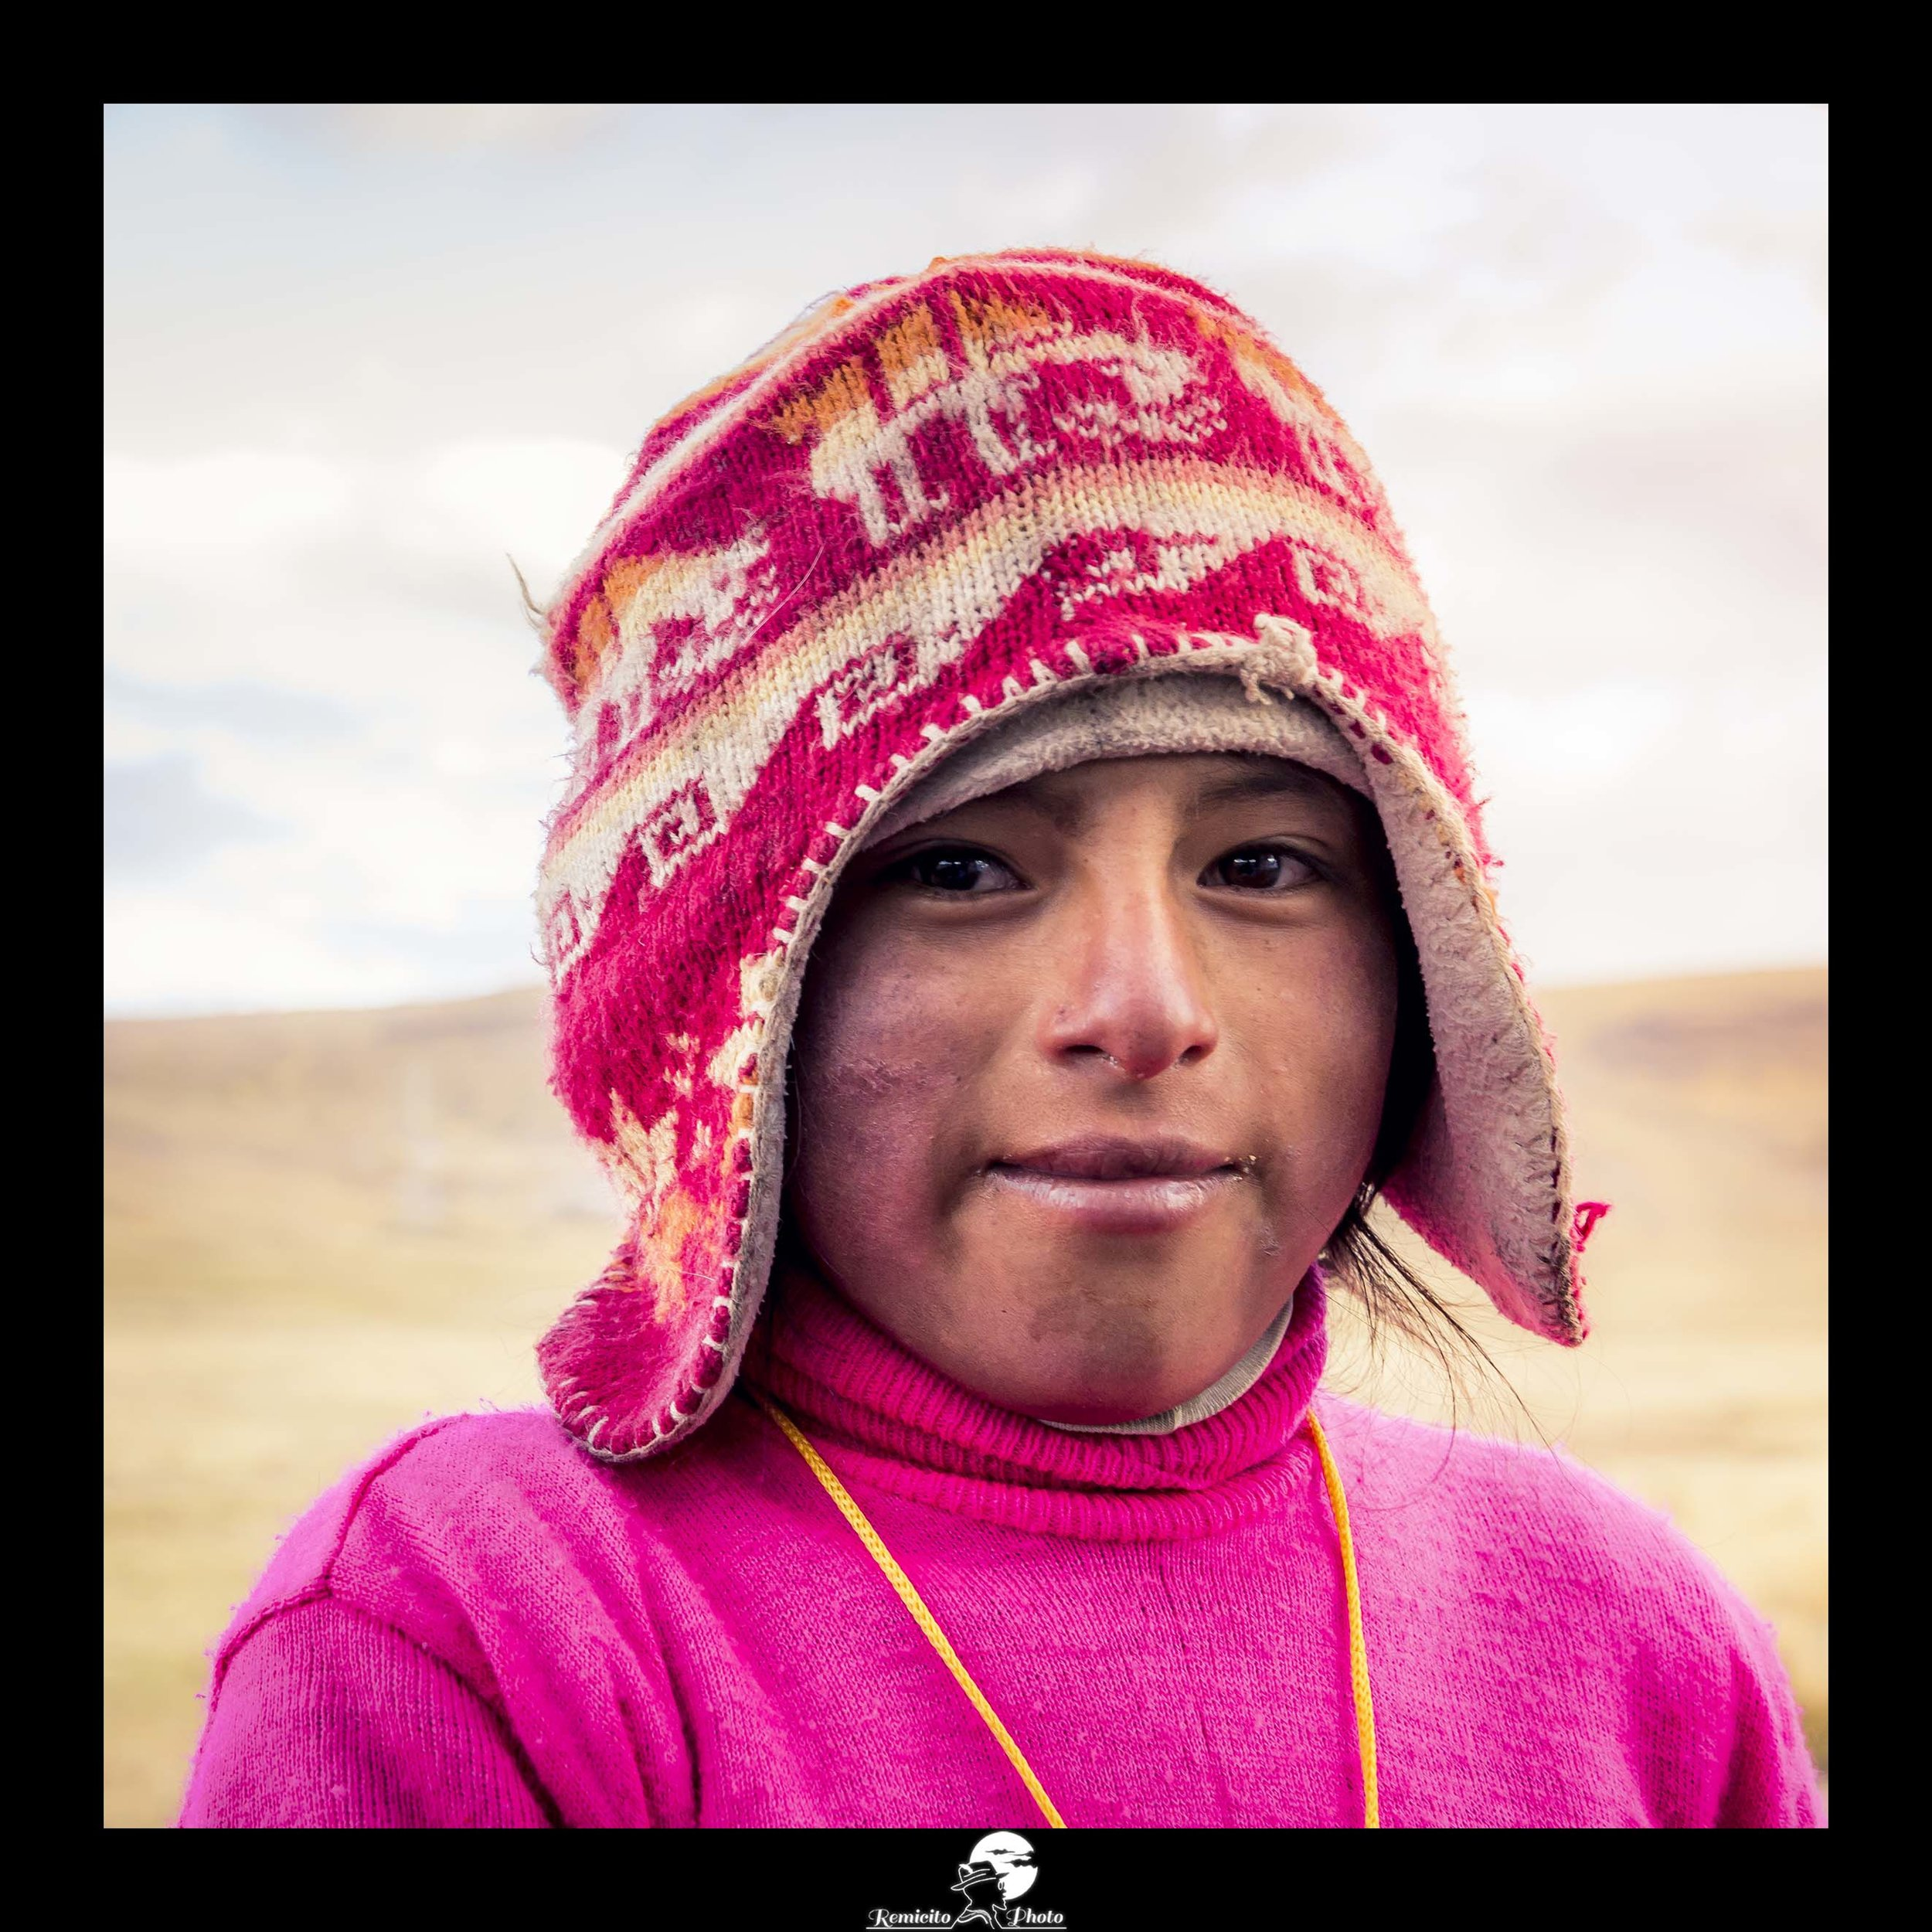 remicito photo, image du jour, photo du jour, photo of the day, french photographer, photographe français, petite fille photo, photo enfant pérou, child in peru, portrait photography, photo de portrait voyage, belle photo de voyage, travel photography, idée cadeau, idée déco, belle photo décoration